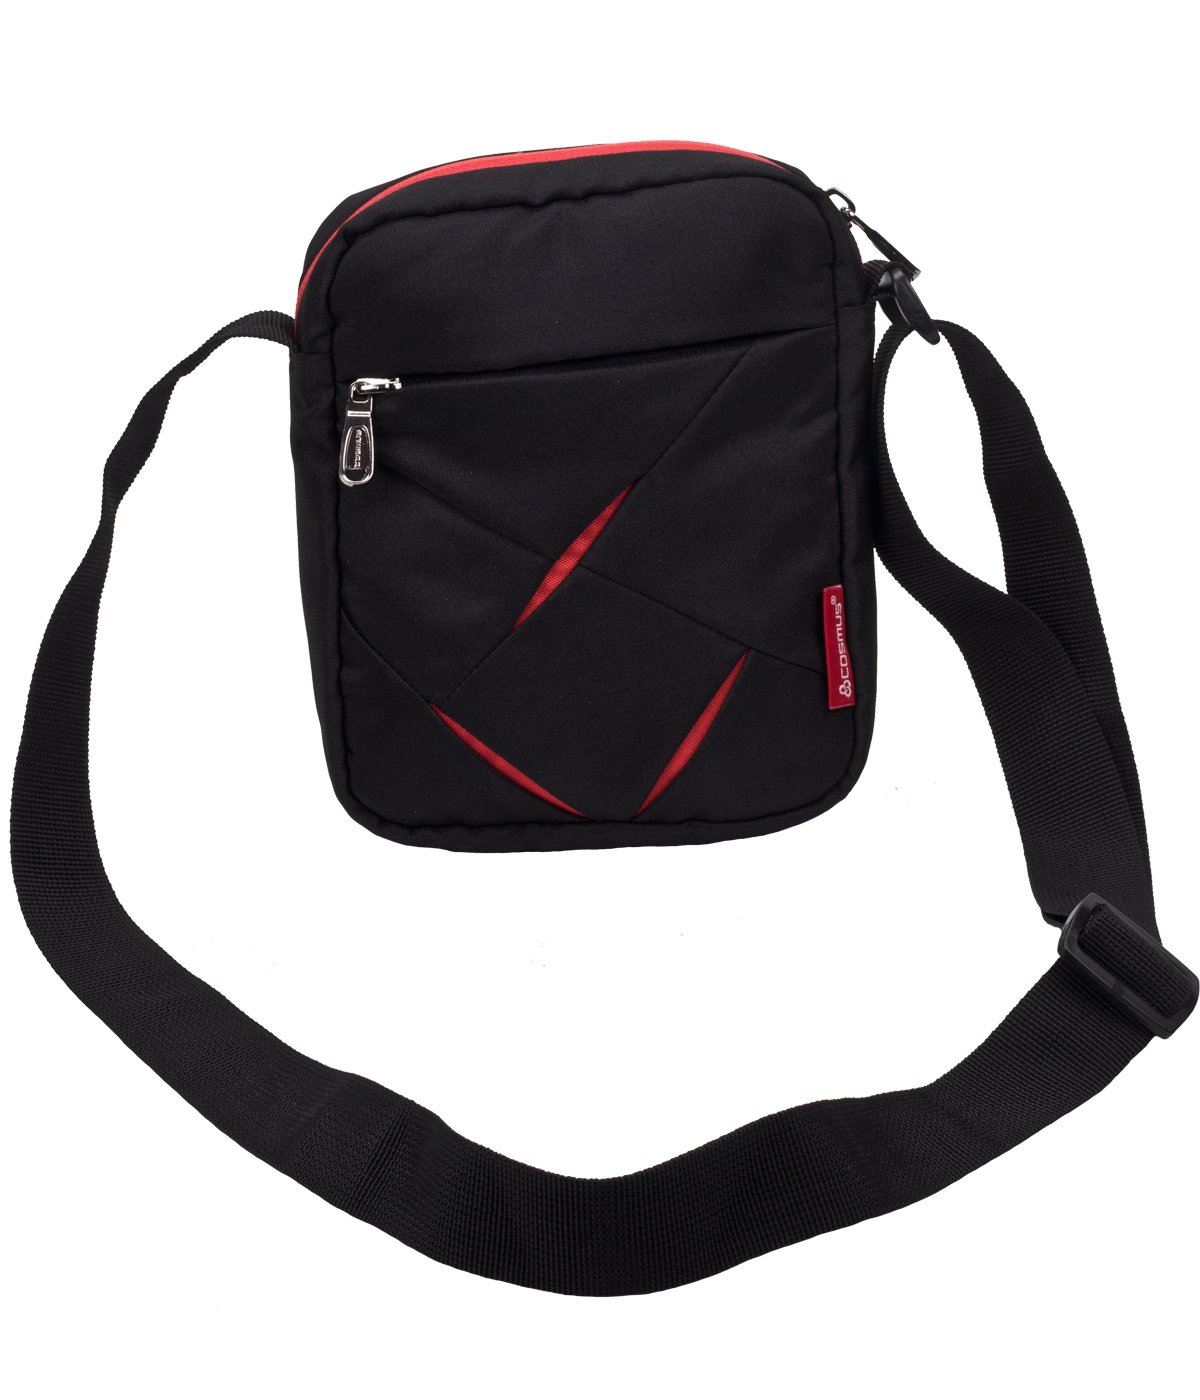 Small Sling Bag for Men - Cosmus Index-Small Bag for Mobile & Wallet- Black & Red product image